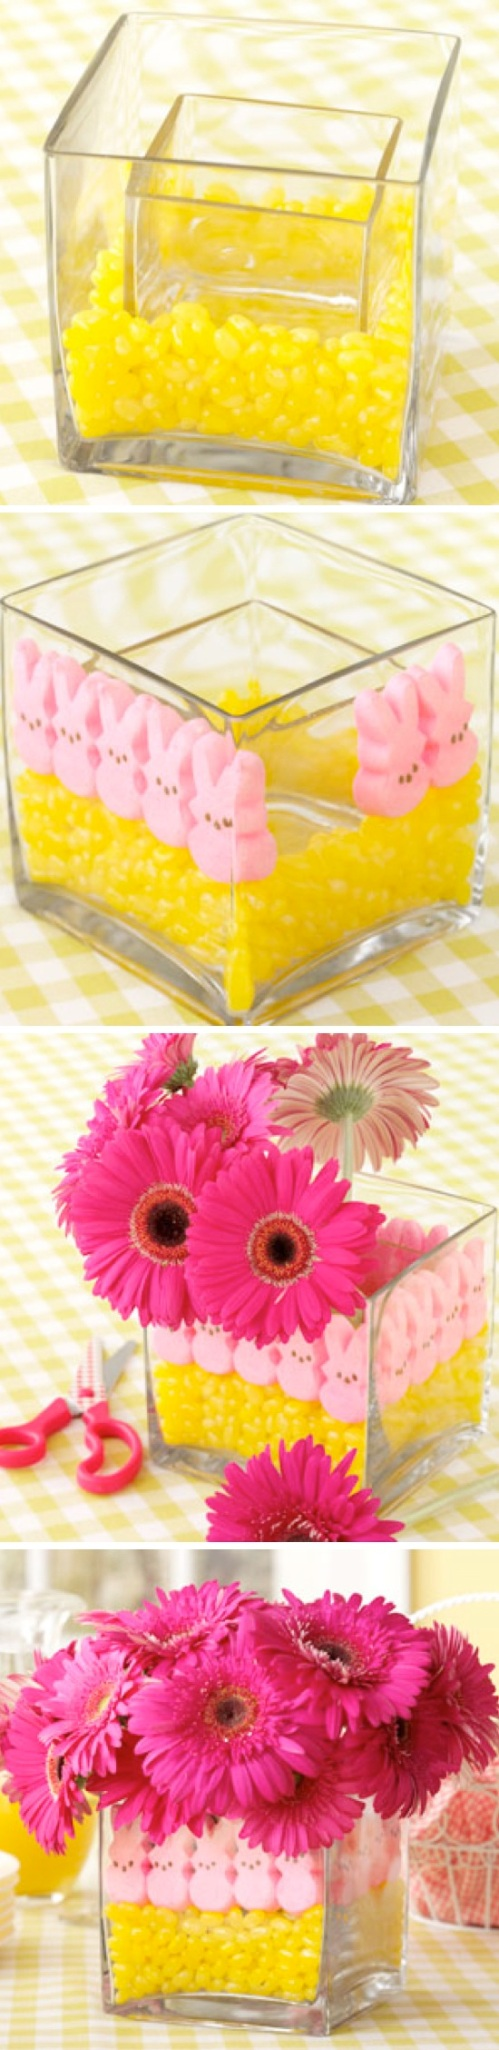 Easter Peeps and Flower Centerpiece